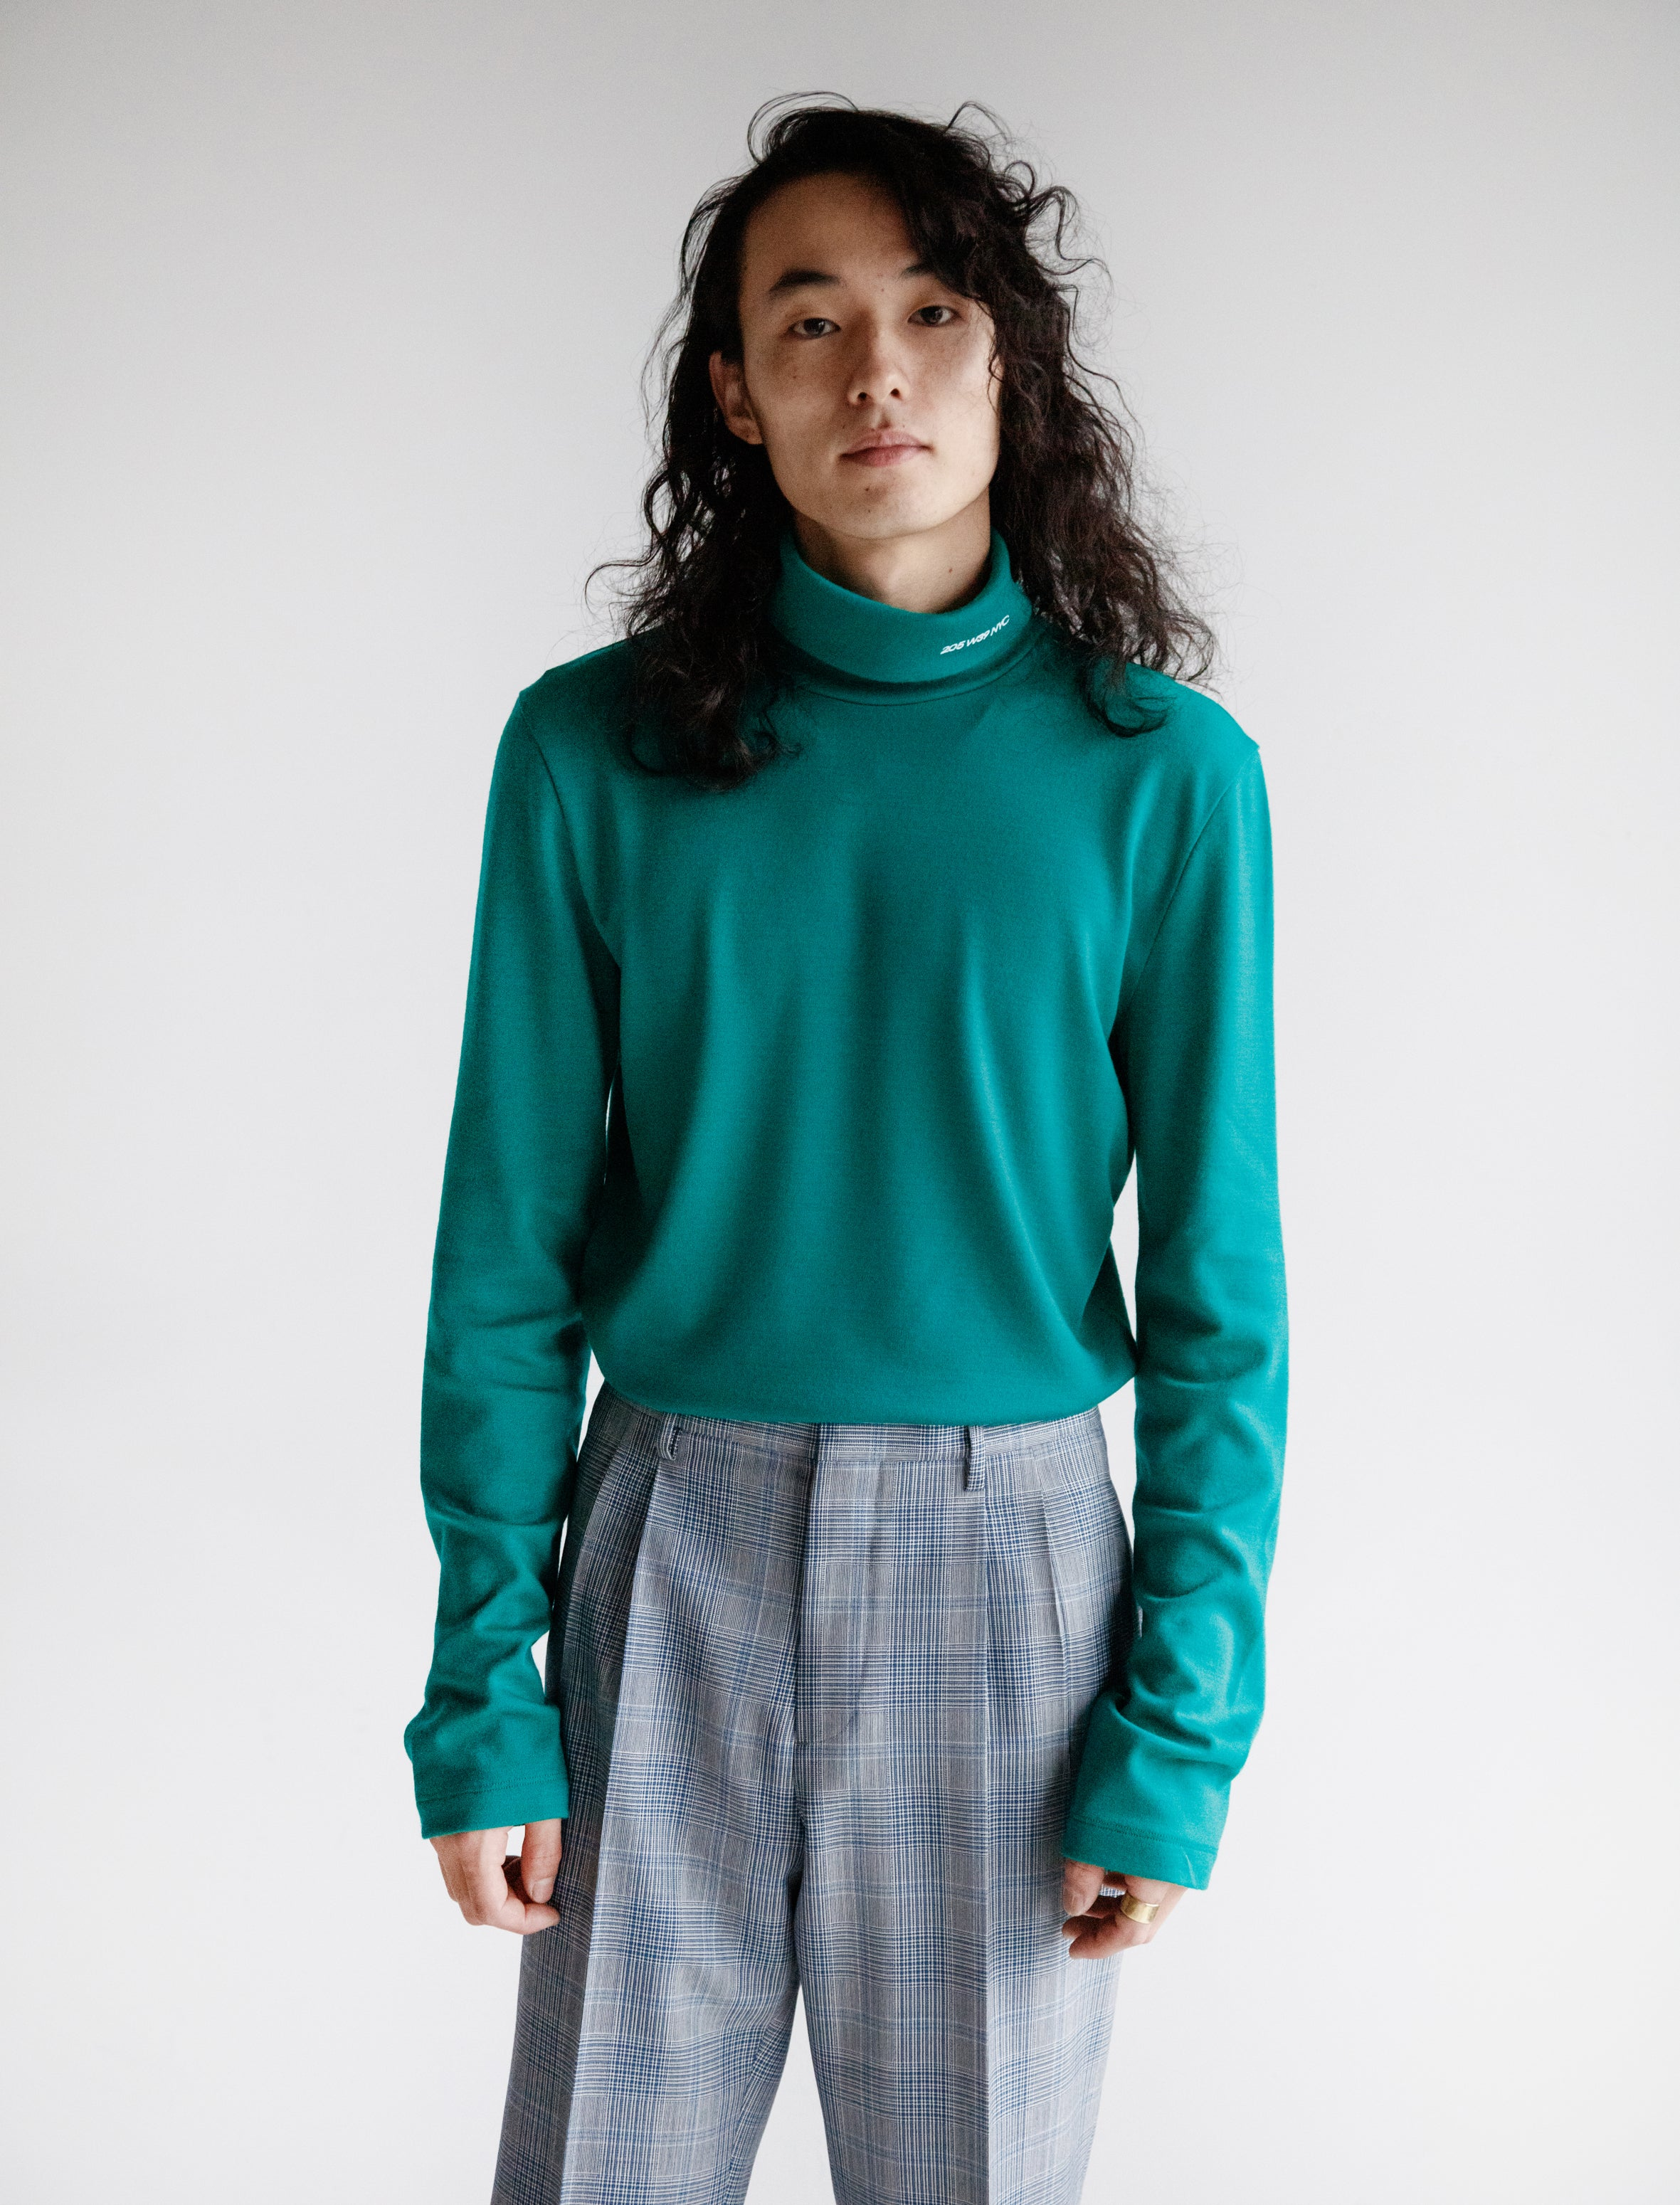 205 Turtleneck Wool Jersey Teal